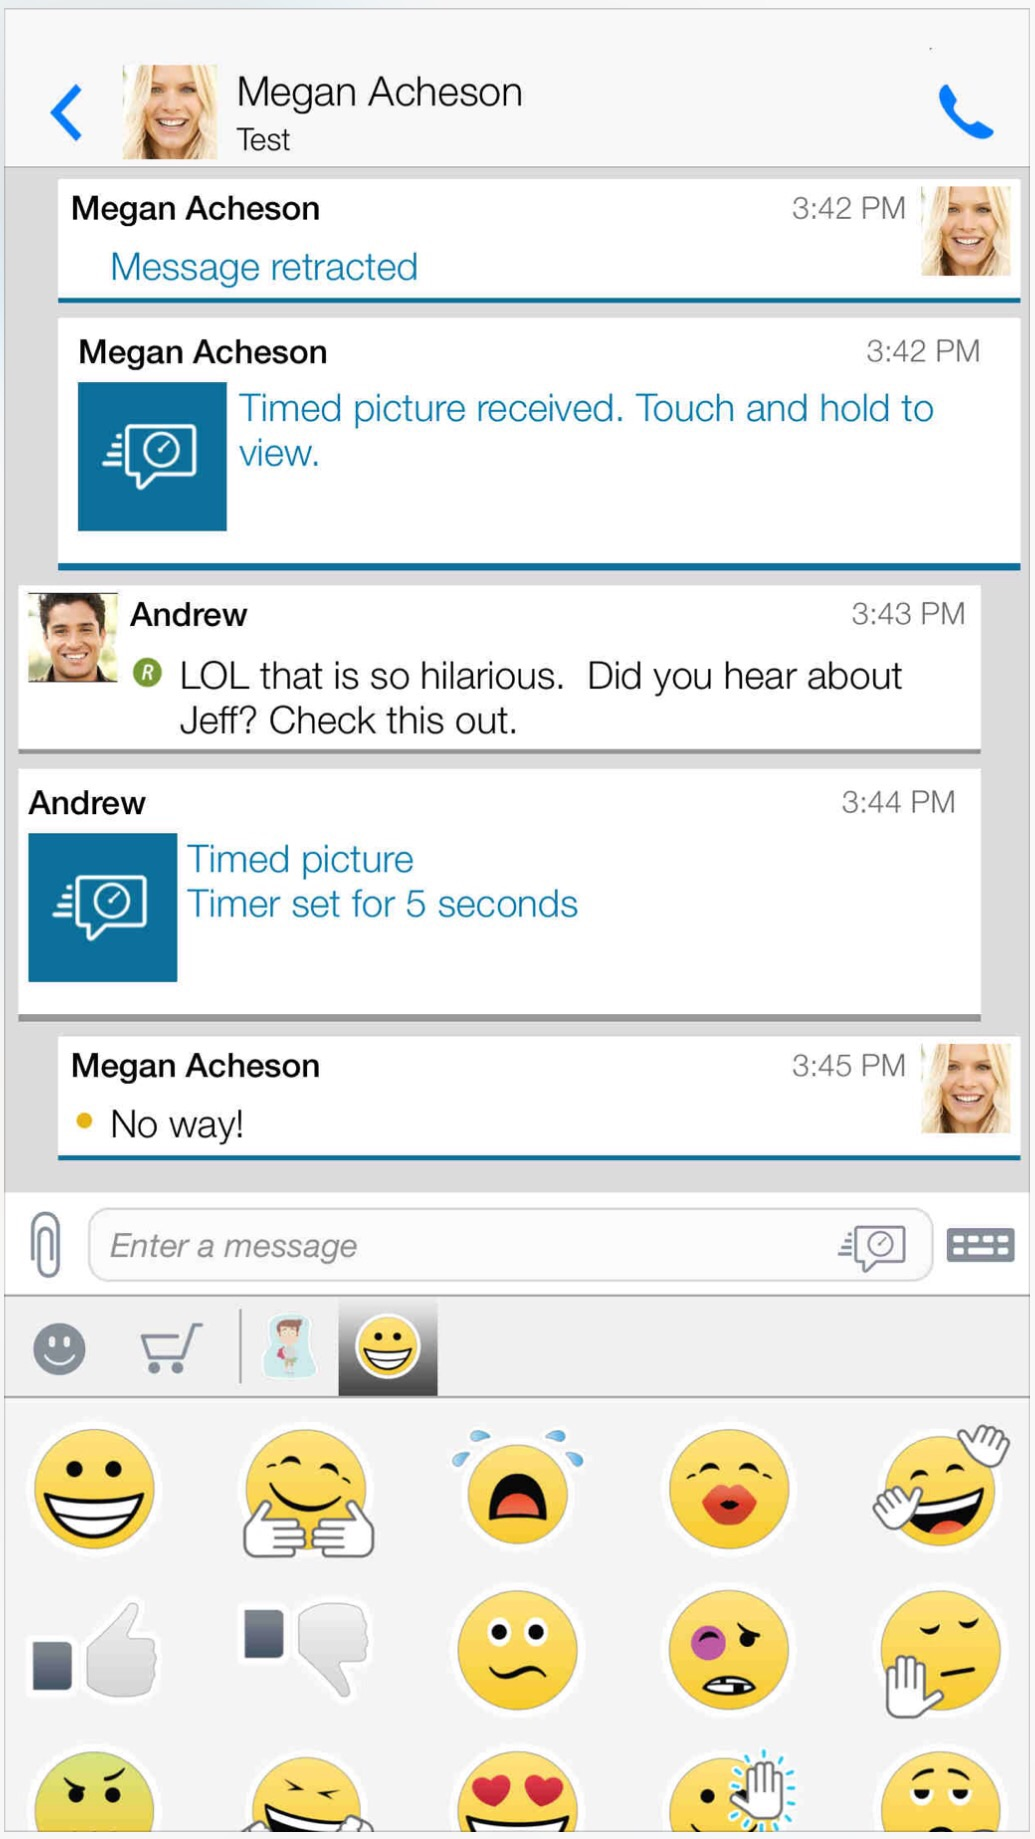 BlackBerry updates BBM with iOS 8 redesign, iPhone 6 support and more features